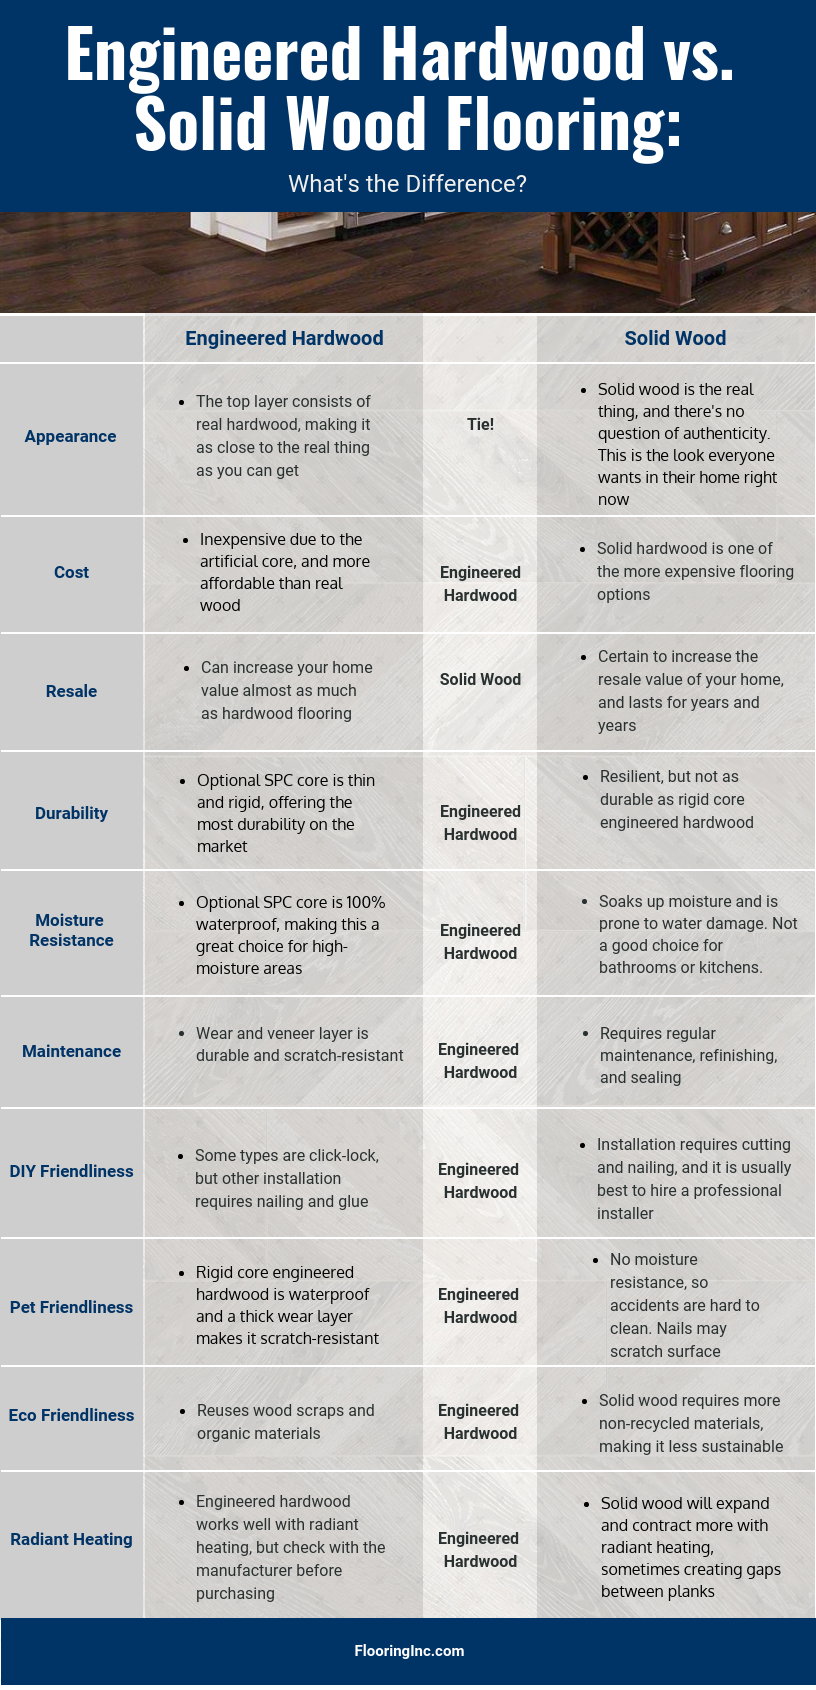 Comparison chart showing the differences between engineered hardwood and solid hardwood